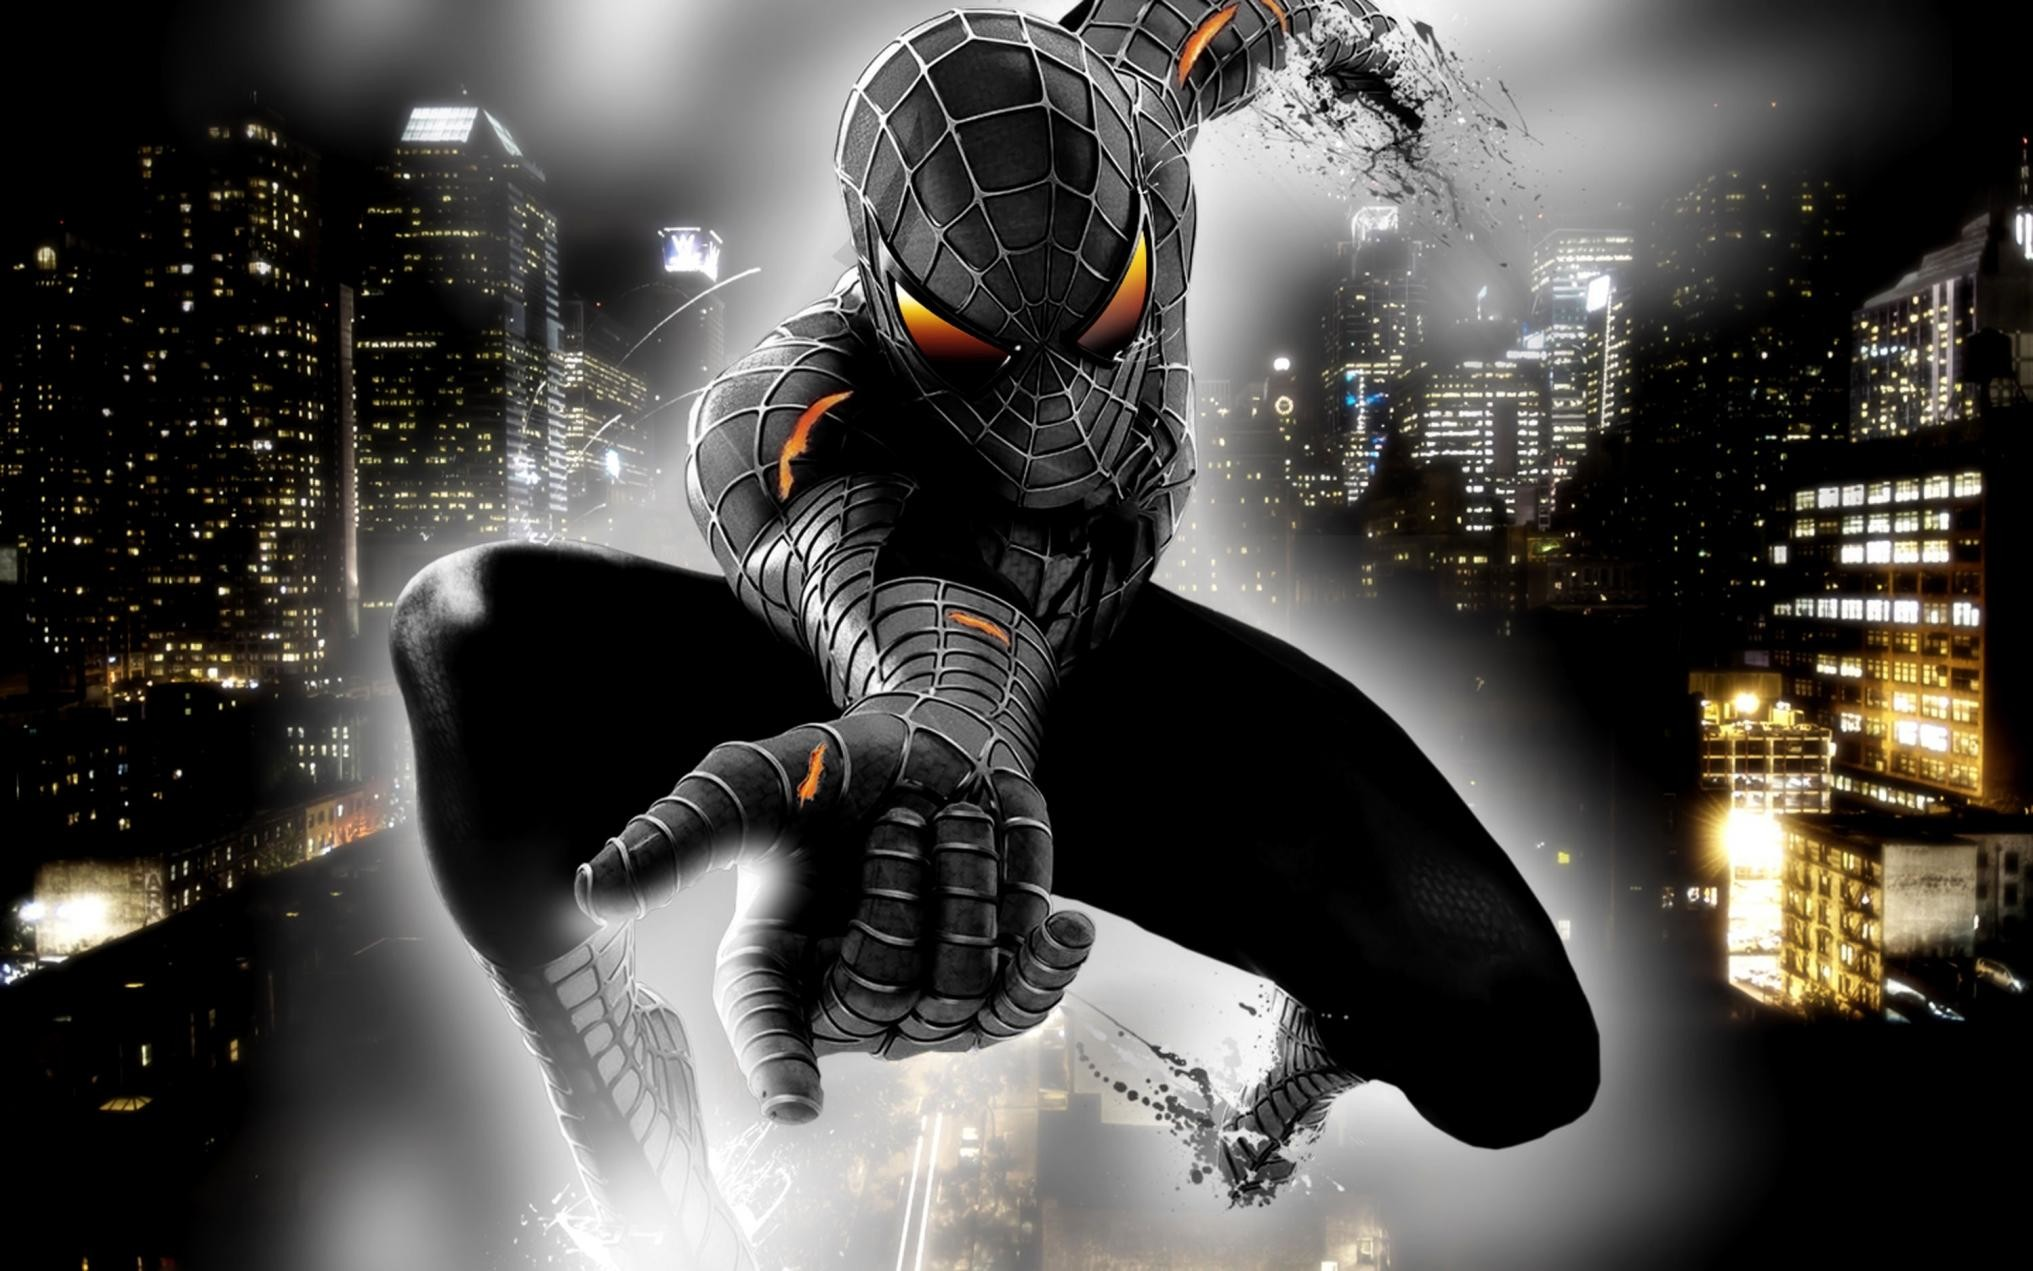 10 Top Spider Man 2099 Wallpaper Full Hd 1080p For Pc Desktop: Black Spider Man Wallpapers ·① WallpaperTag